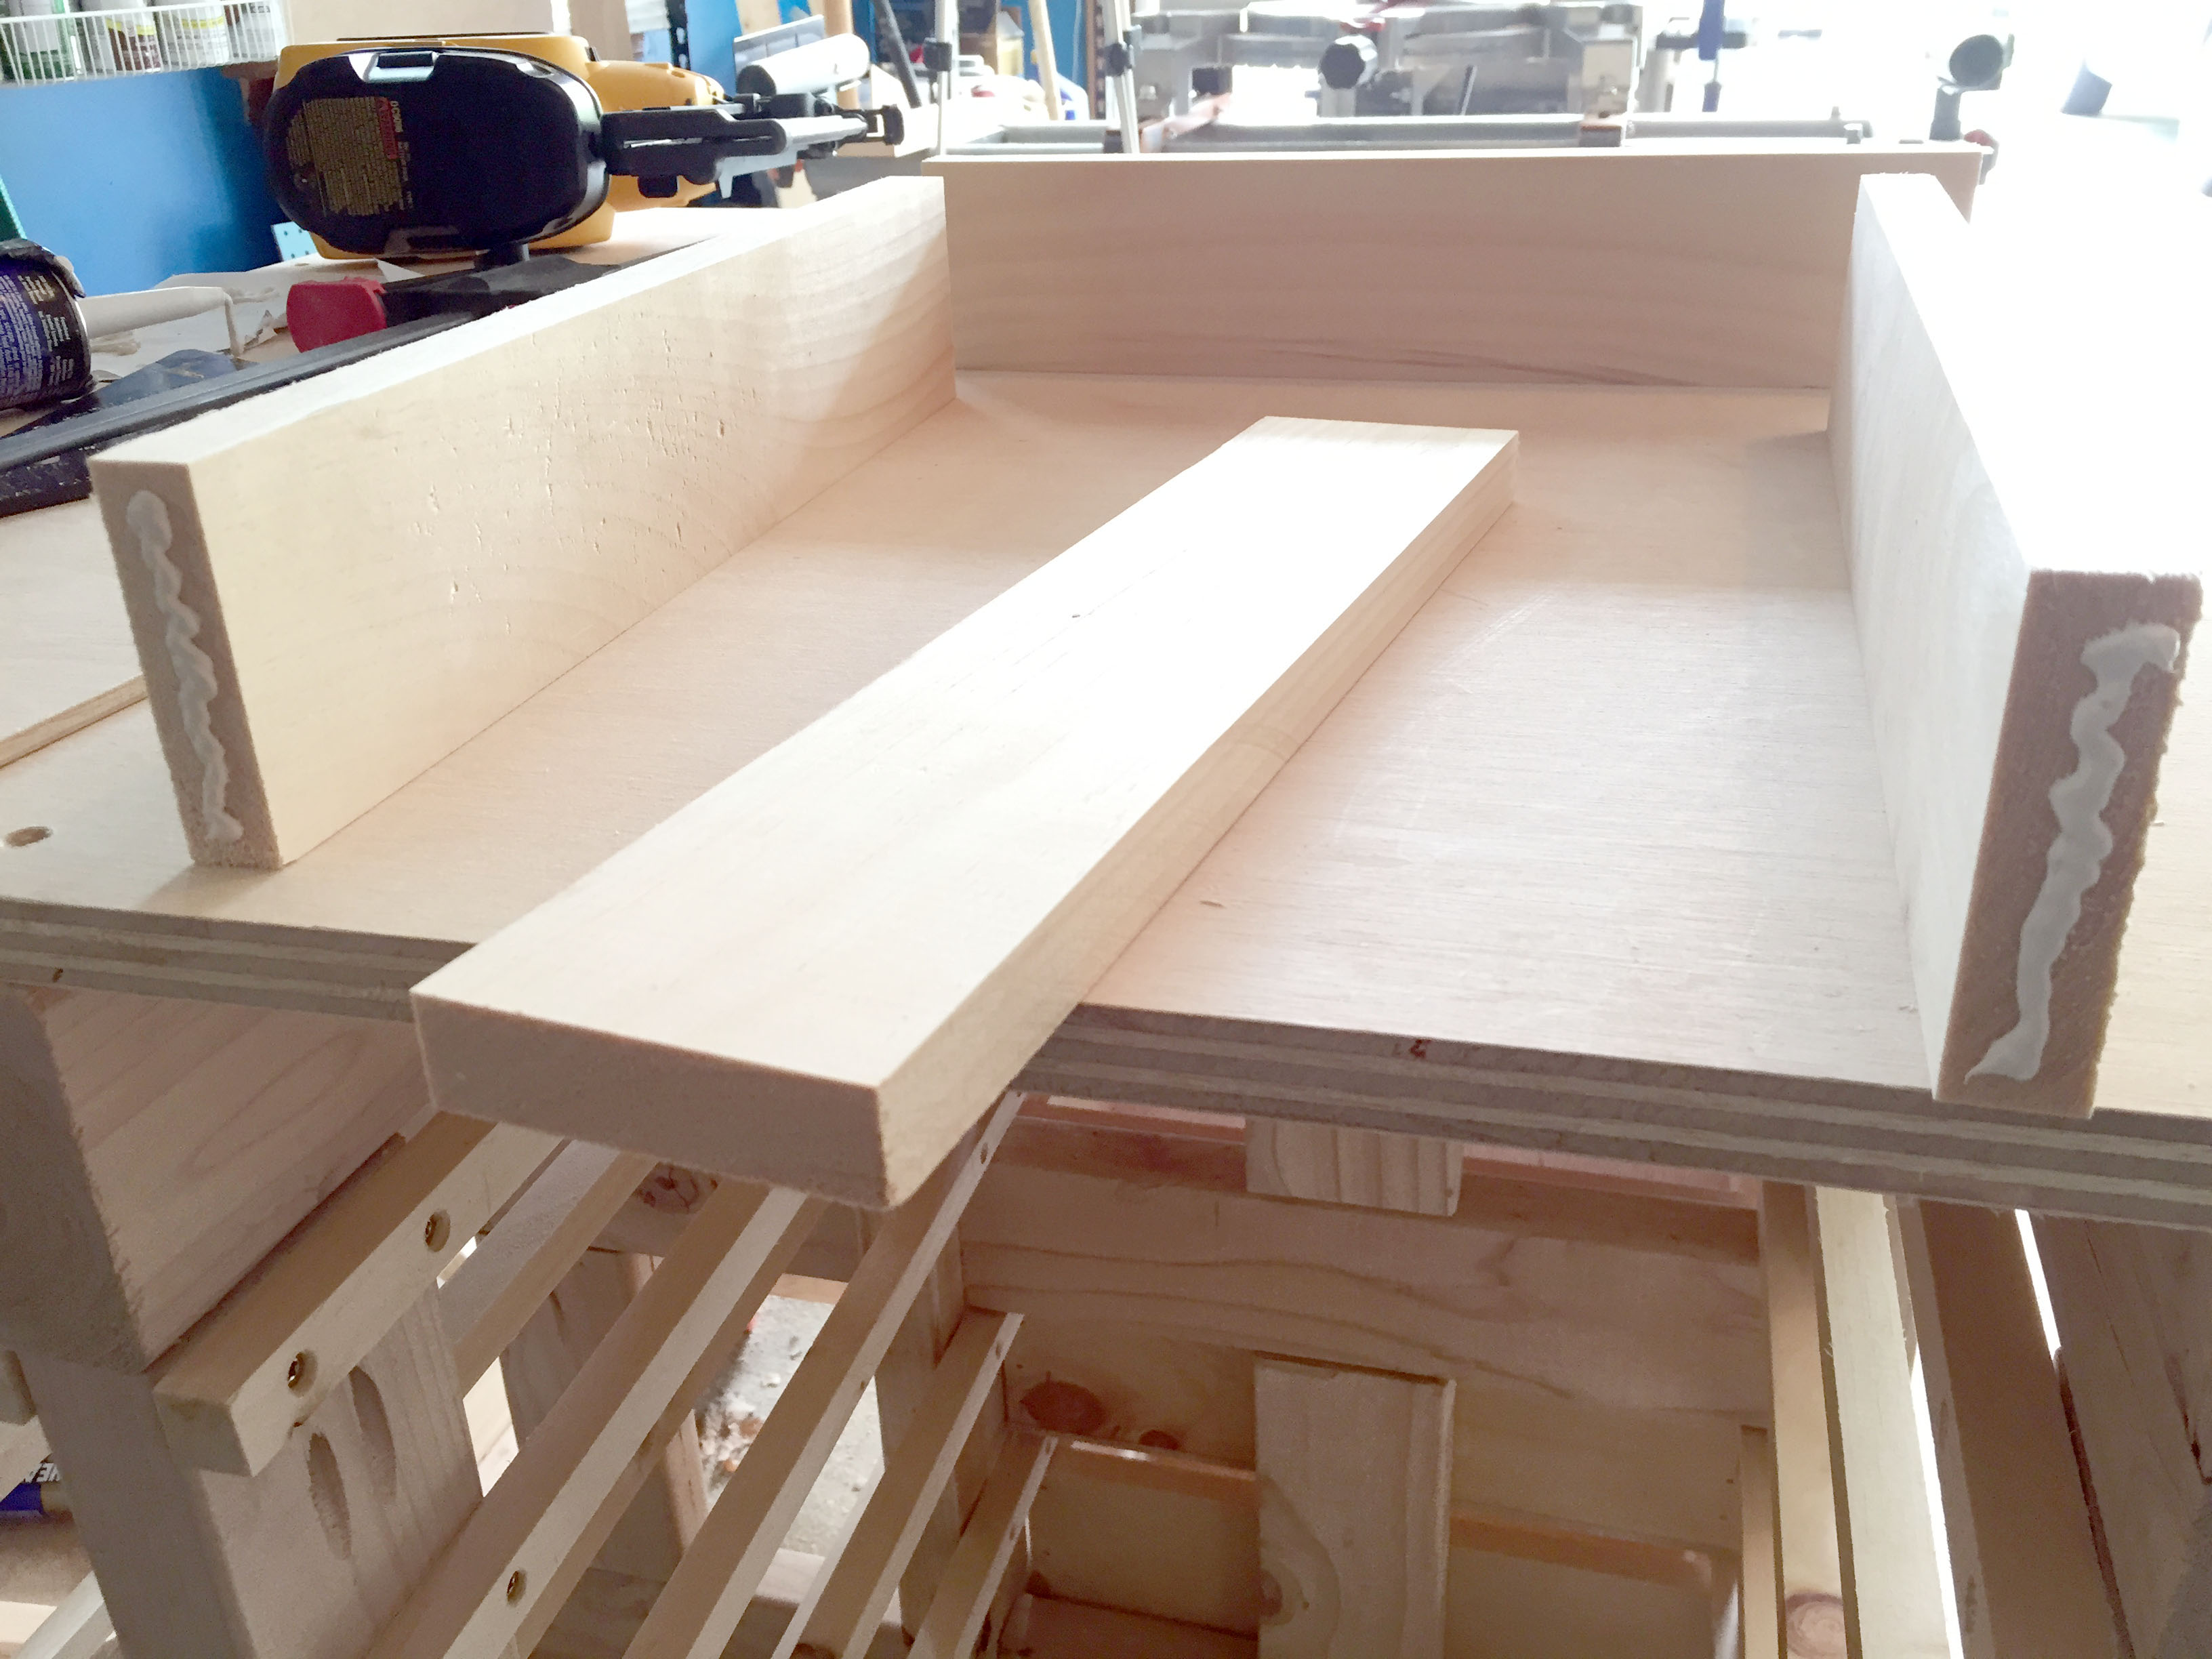 Assembling the Drawer Board Sides to Build Basic Drawers